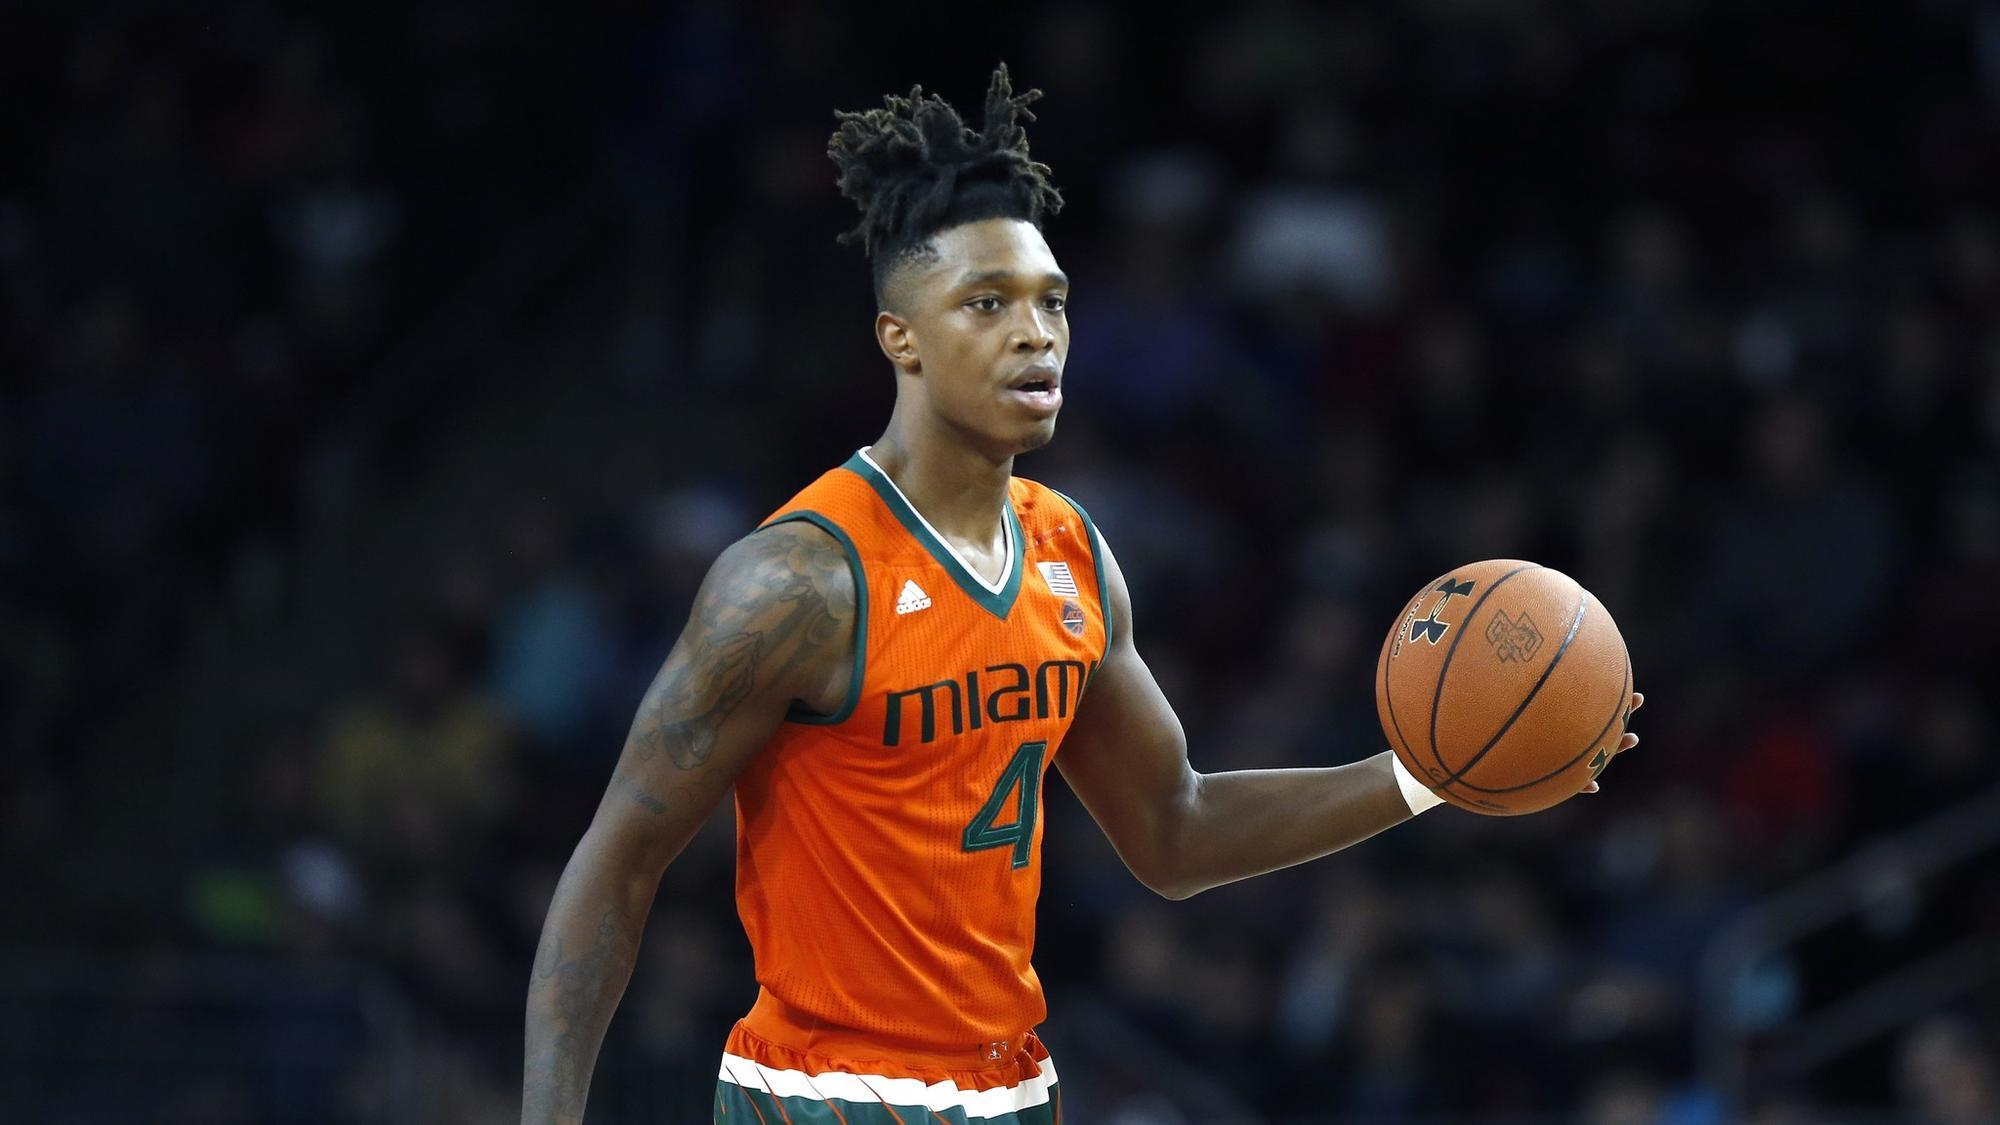 After draft decision UMs Lonnie Walker IV and the Hurricanes mens basketball team begin